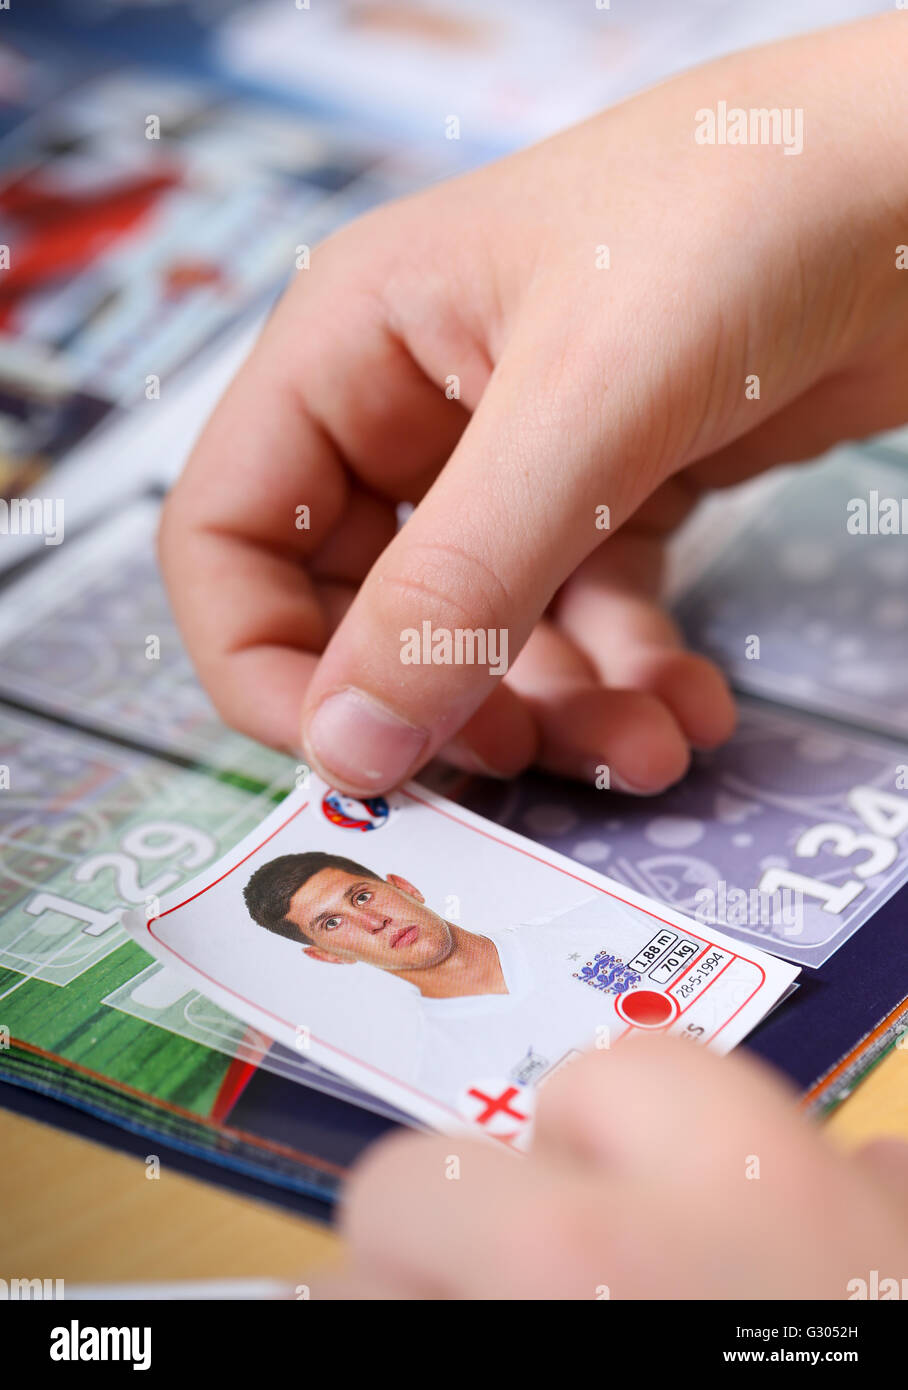 A boy putting Panini football stickers in to an album - Stock Image